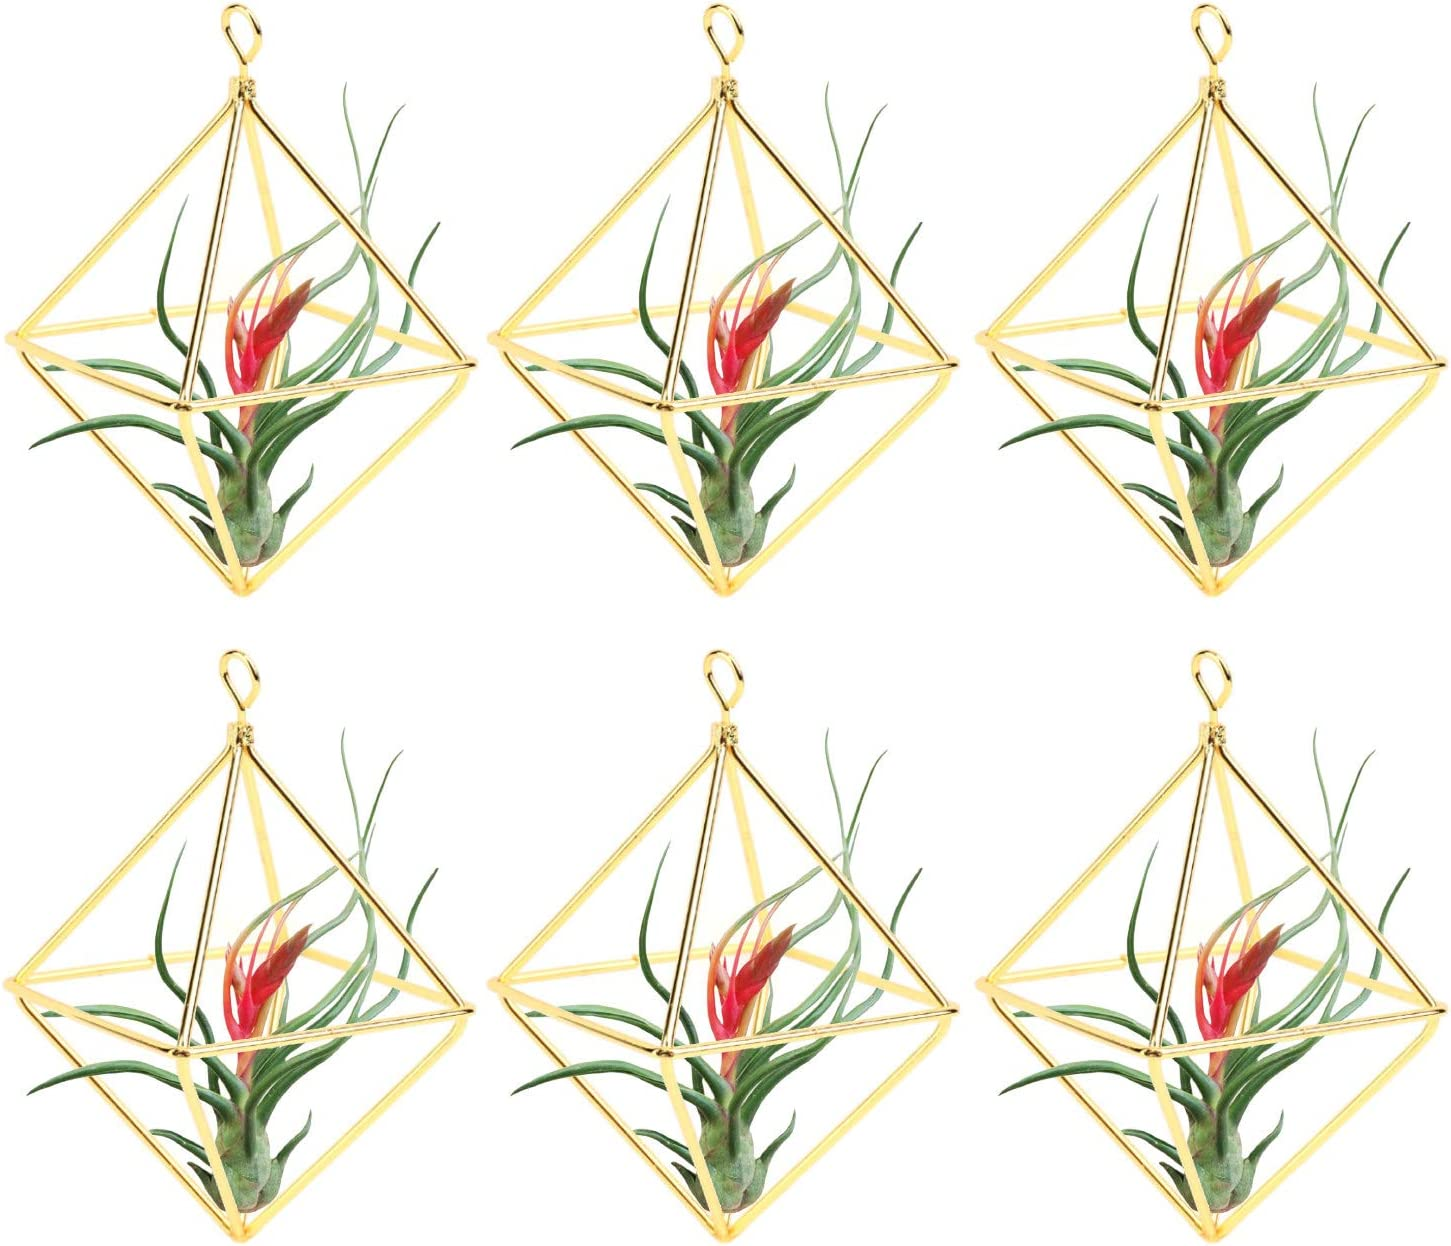 Yesland 6 Packs 2.4 Inch Air Plant Holder, Modern Geometric Metal Planter, Minimalist, Himmeli Style Easy to Hang Design for Home, Office and Wedding Decor